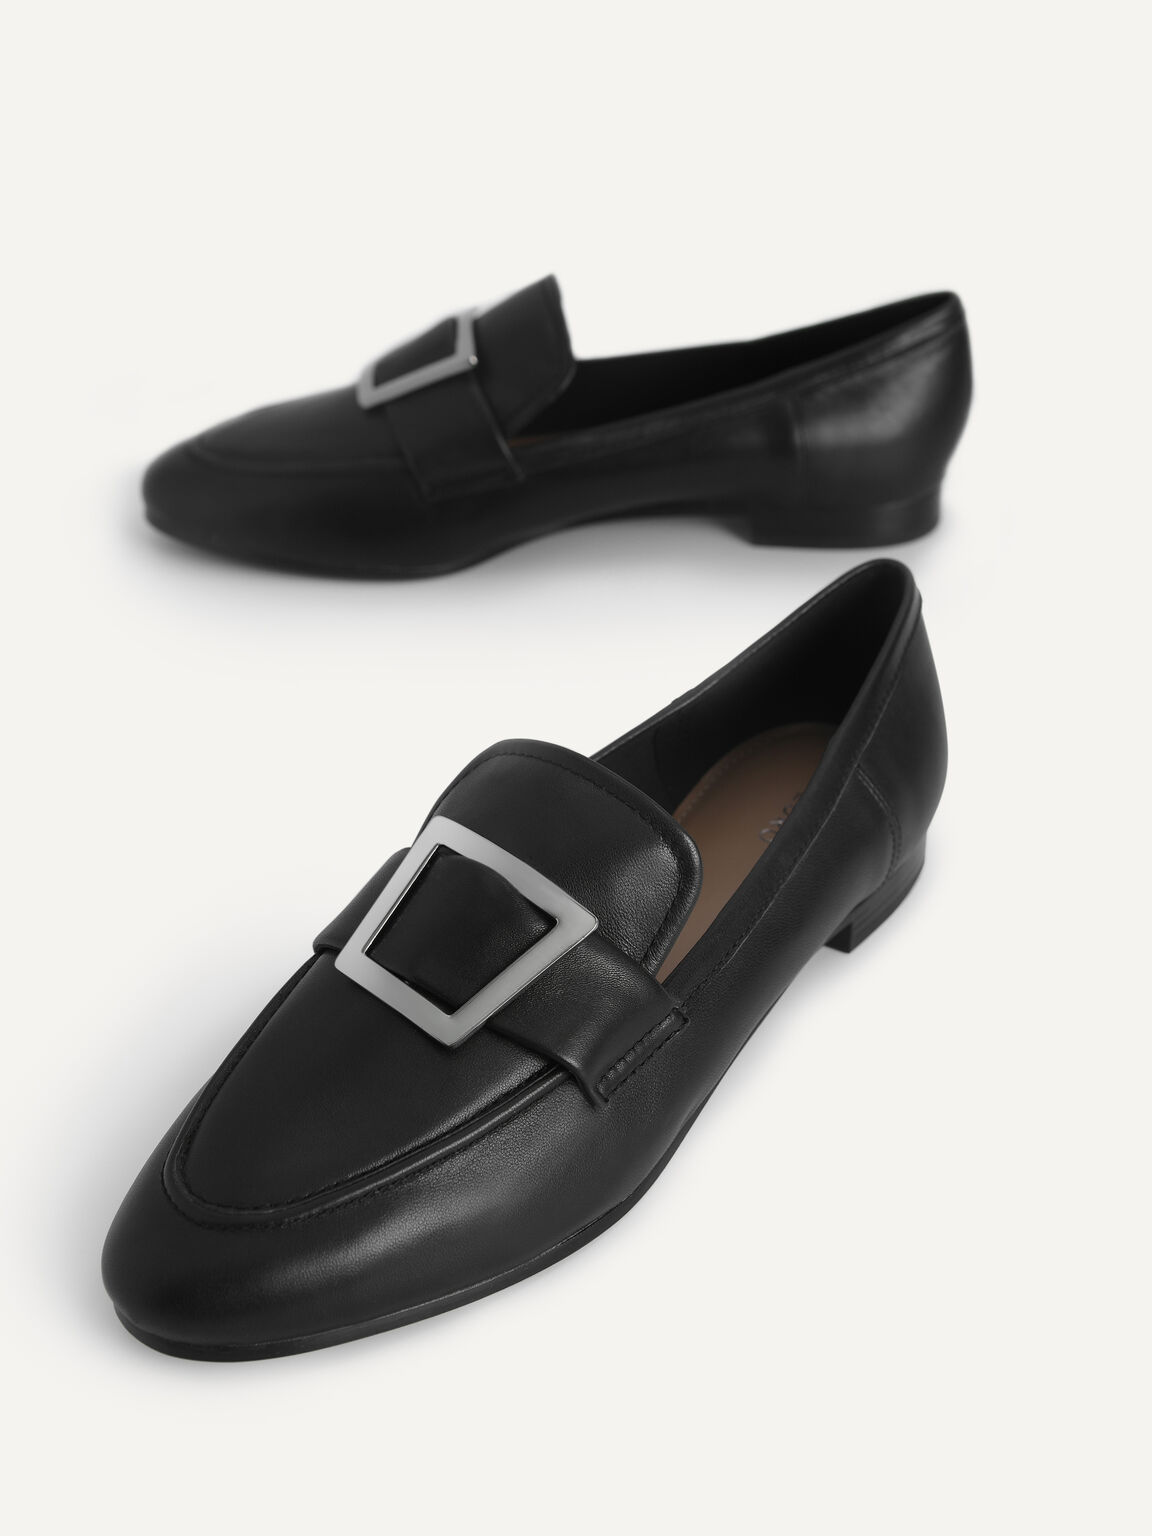 Leather Buckle Loafers, Black, hi-res